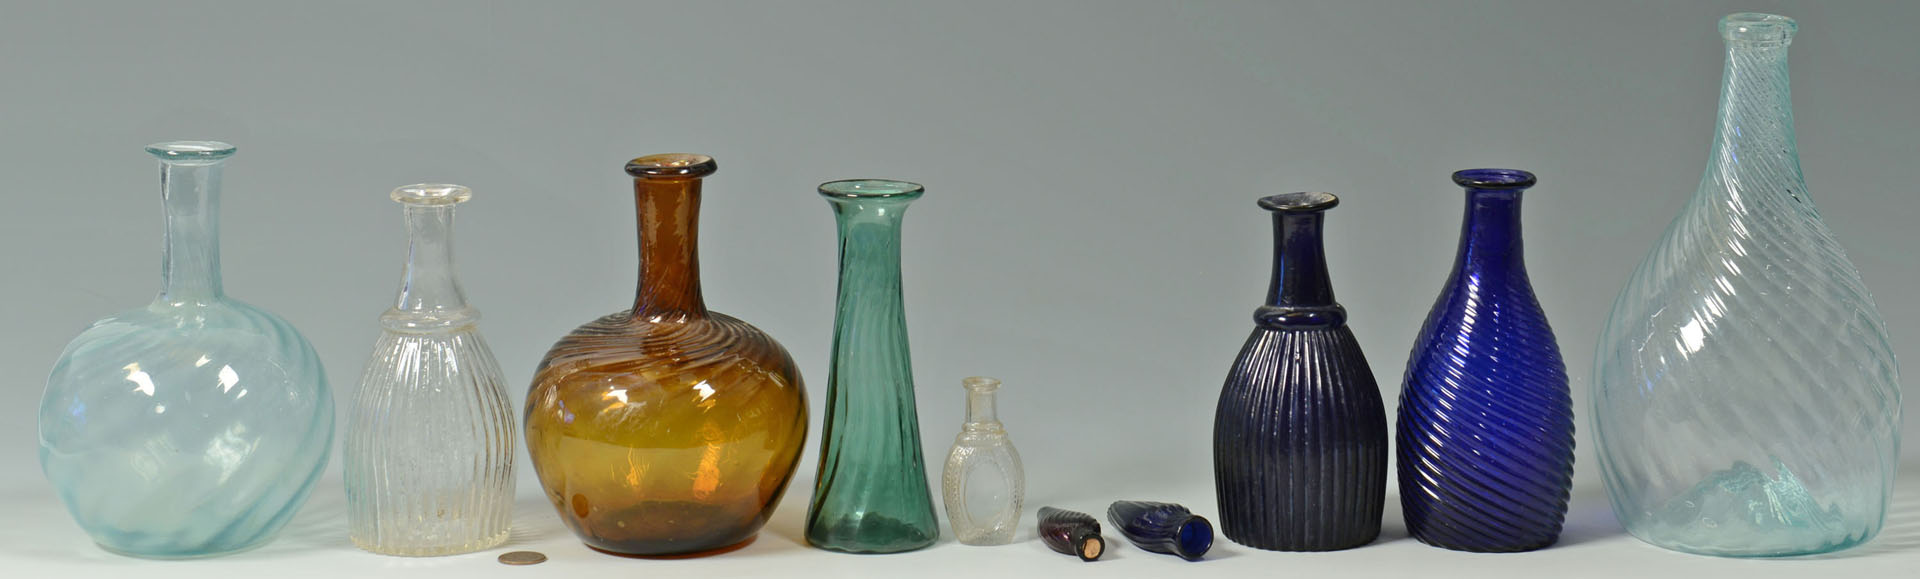 Lot 158: 10 blown colored glass bottles, many pitkin type